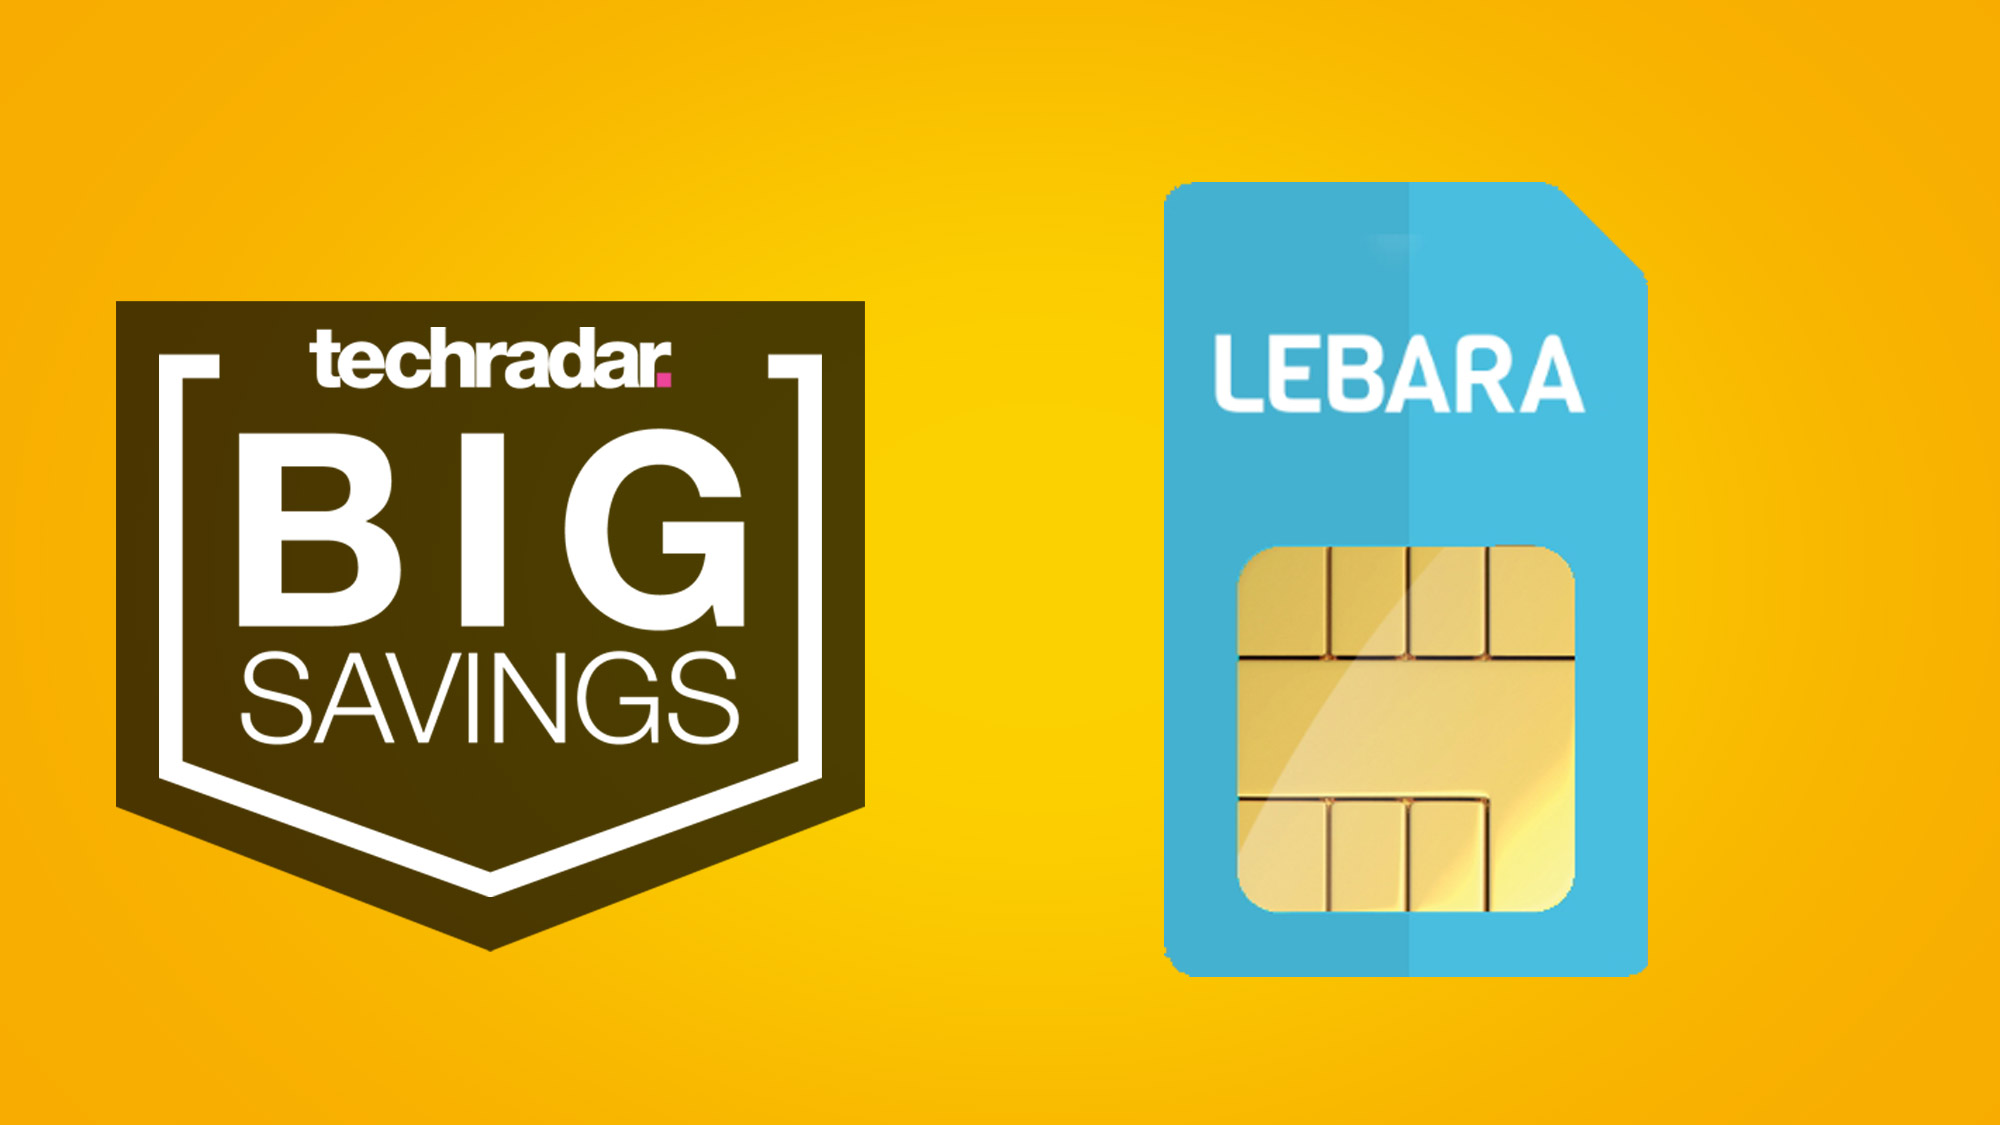 Lebara is currently offering up one of the best cheap SIM only deals on the market